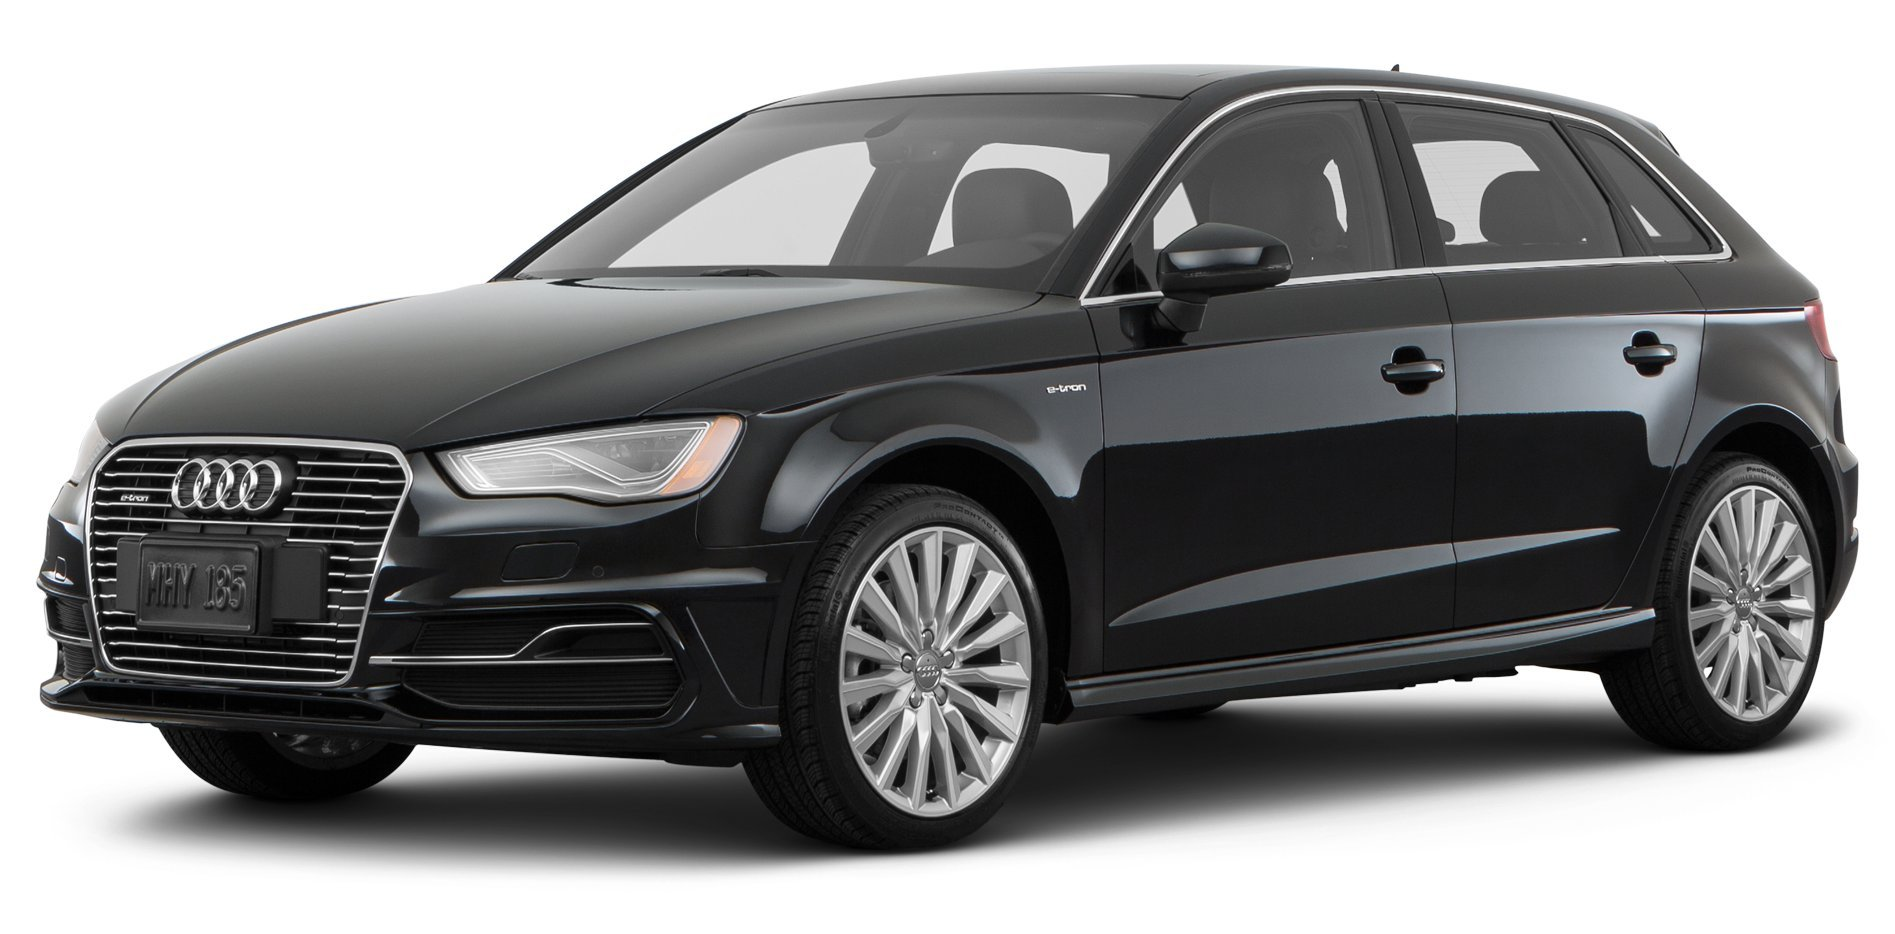 Amazoncom Audi A Sportback Etron Reviews Images And Specs - Audi a3 hatchback